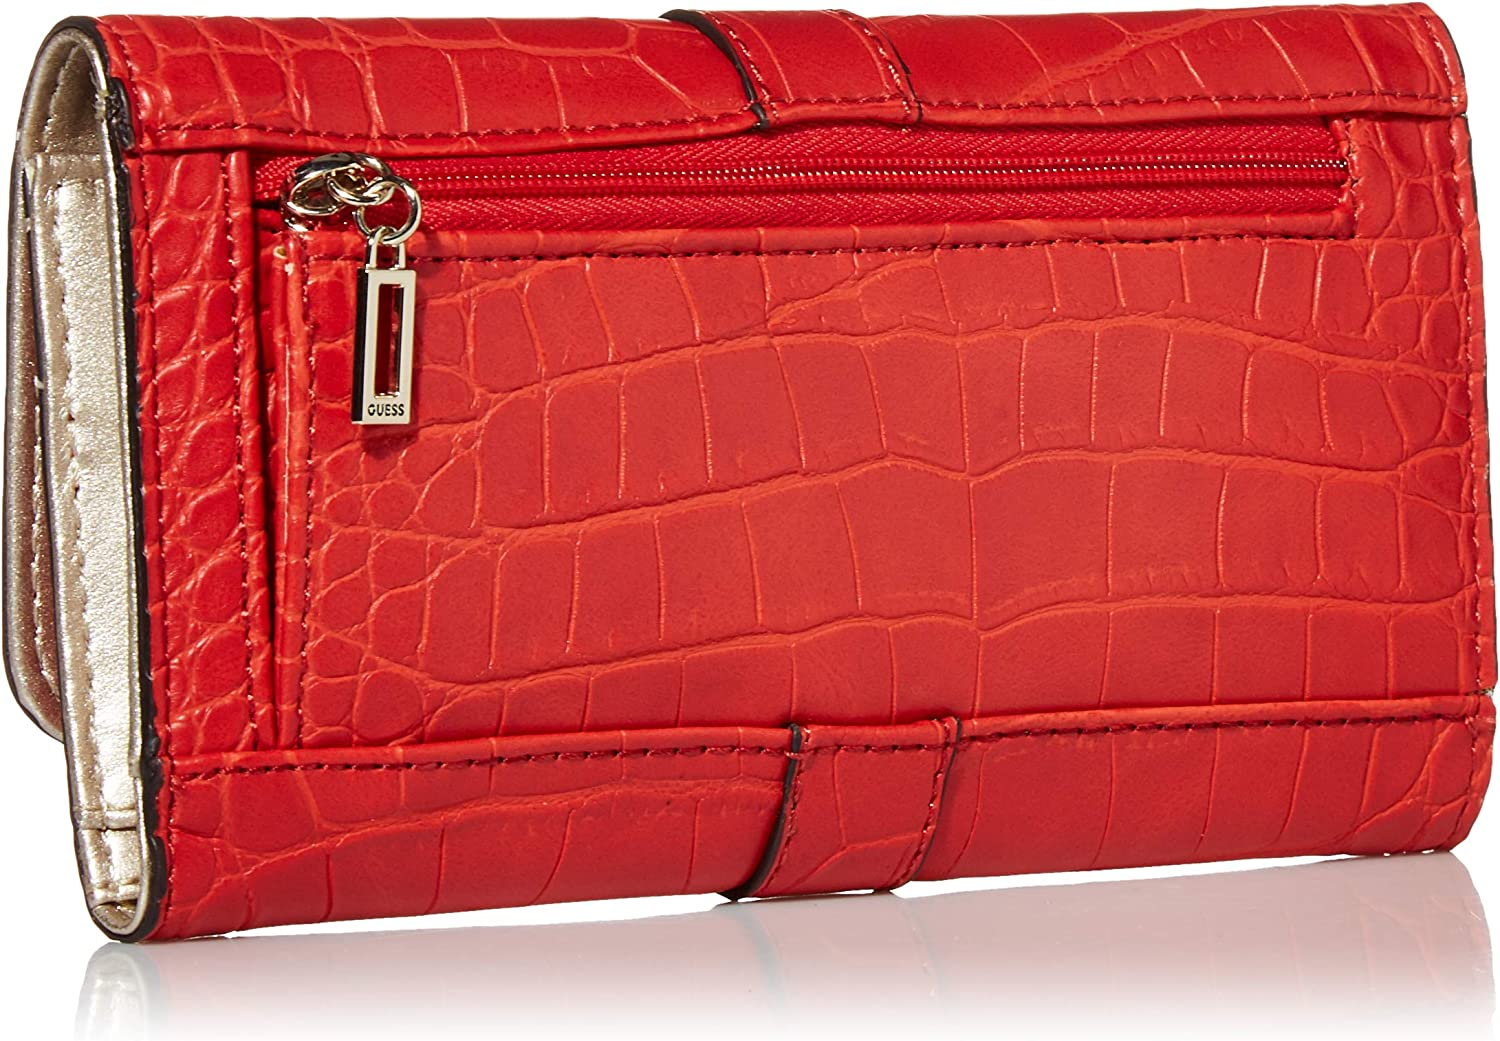 GUESS Asher Slim Clutch Wallet